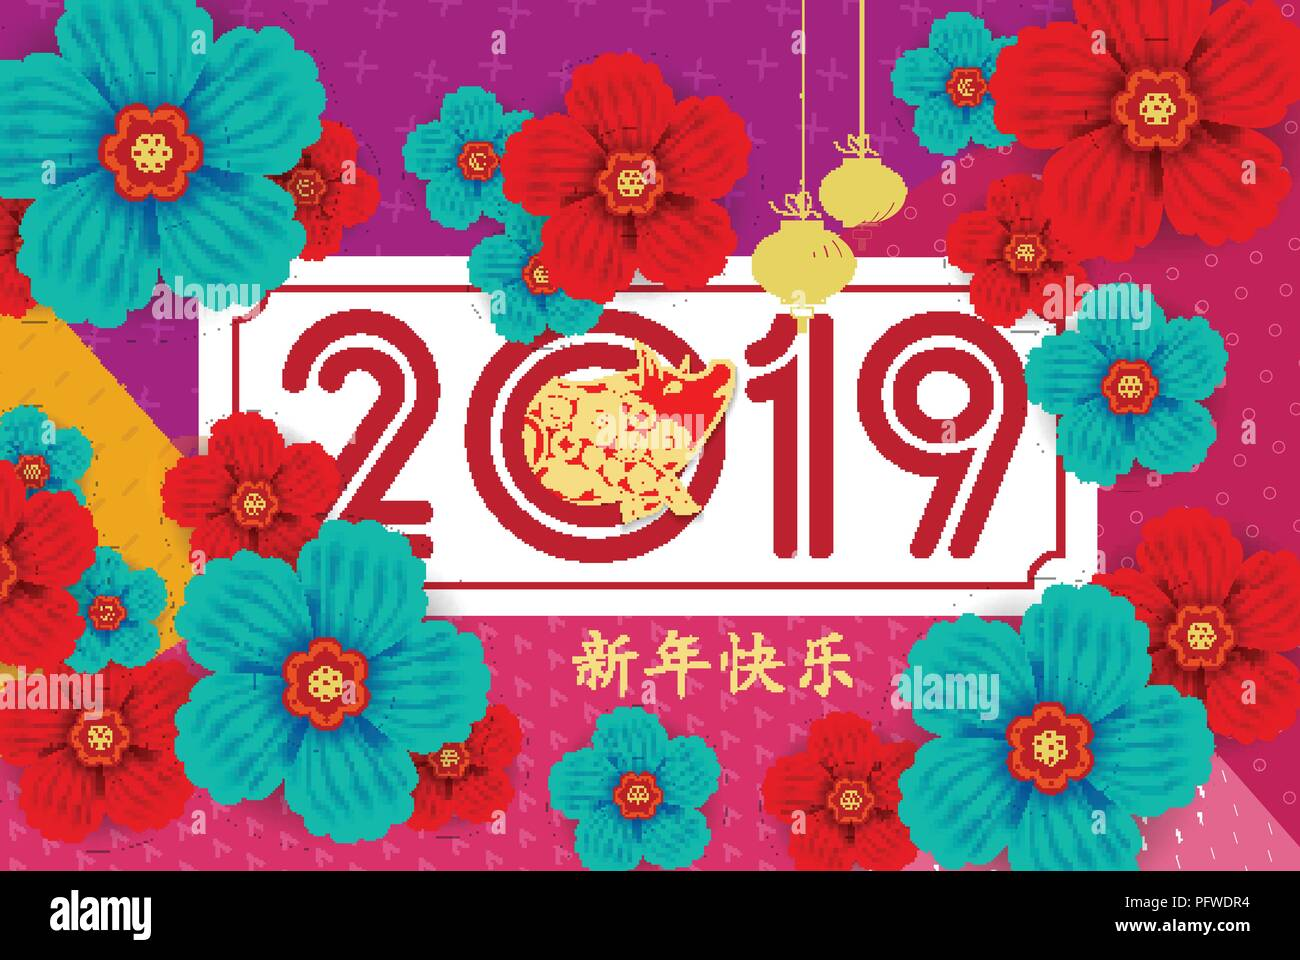 chinese new year design 2019 graceful floral paper art style on beige background chinese characters mean happy new year